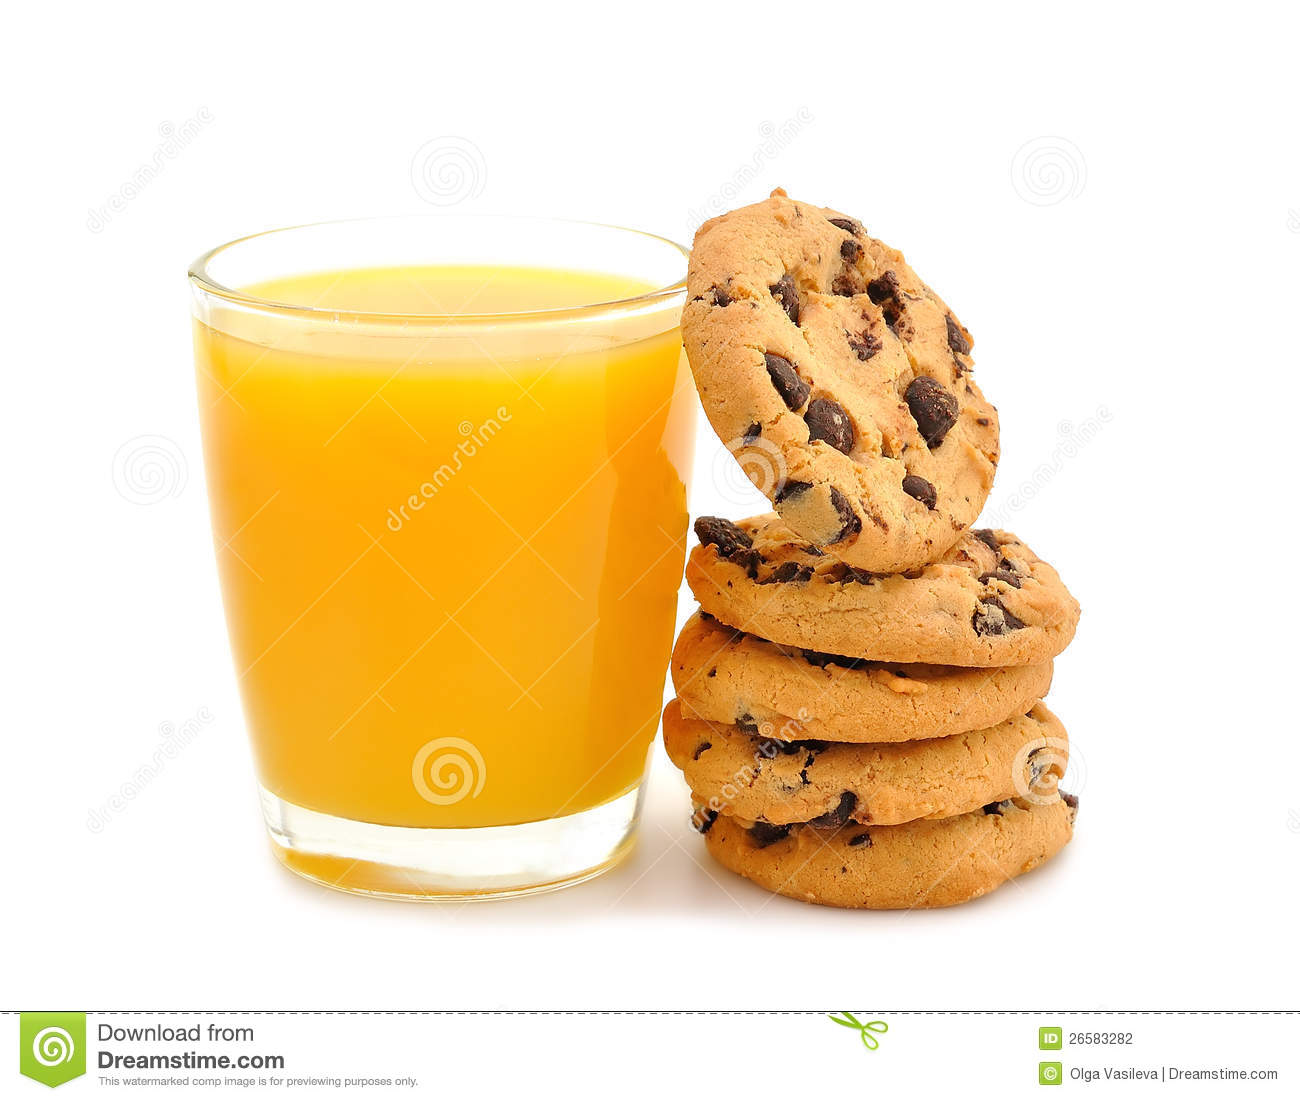 Orange Juice And Cookies Stock Photography - Image: 26583282